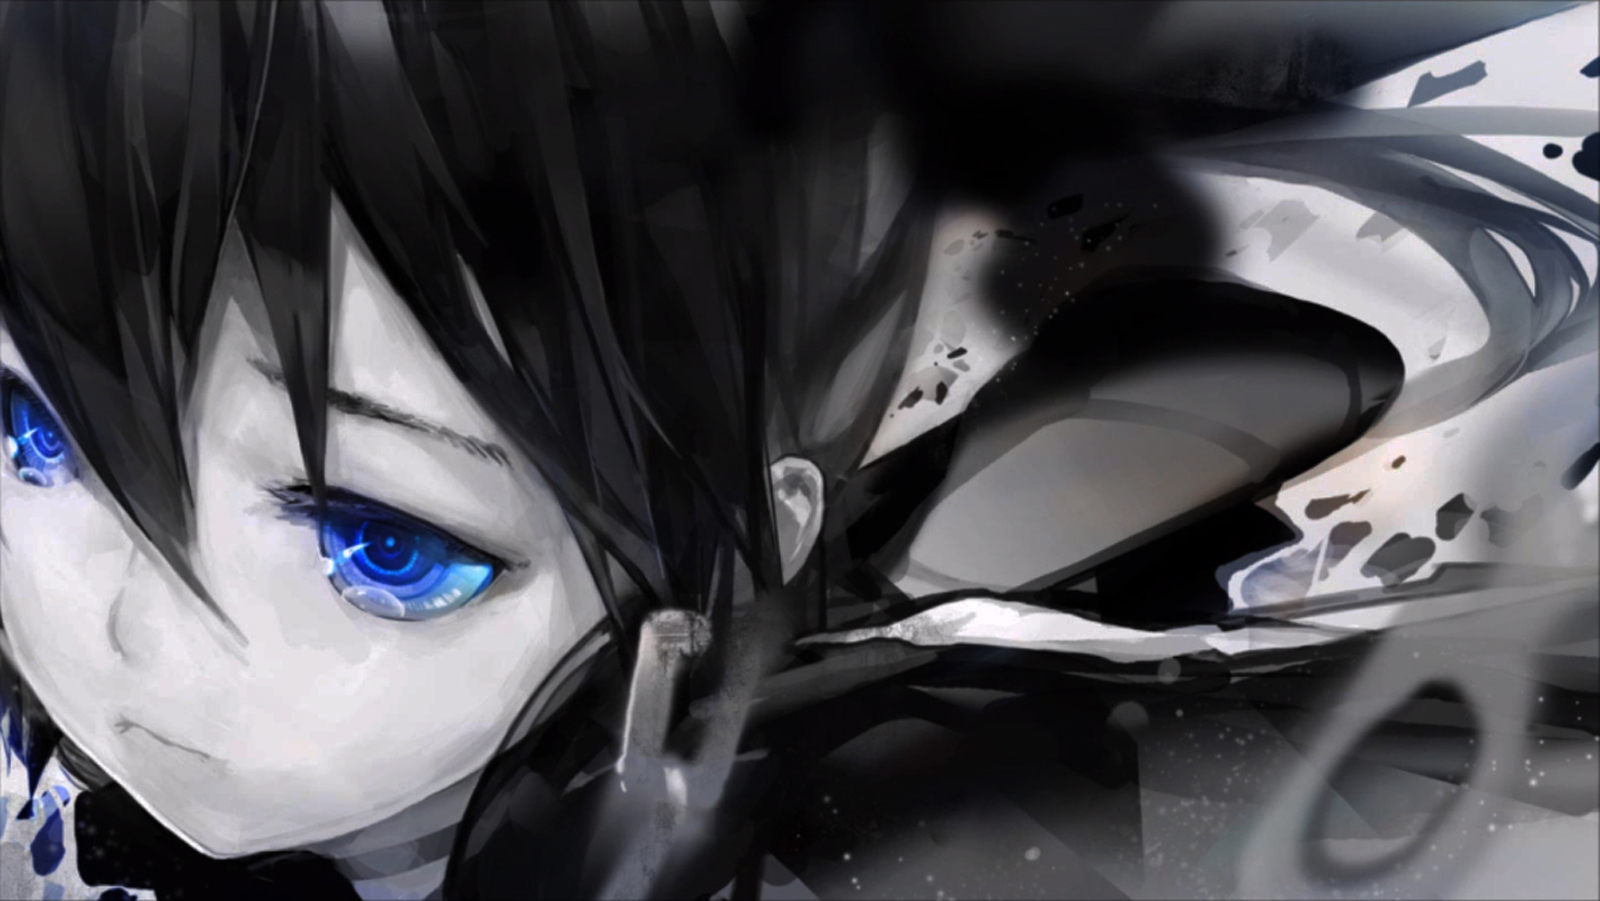 Anime Girl Wallpaper White Haired Demon Guy Fondos De Pantalla Black Rock Shooter Anime Chicas